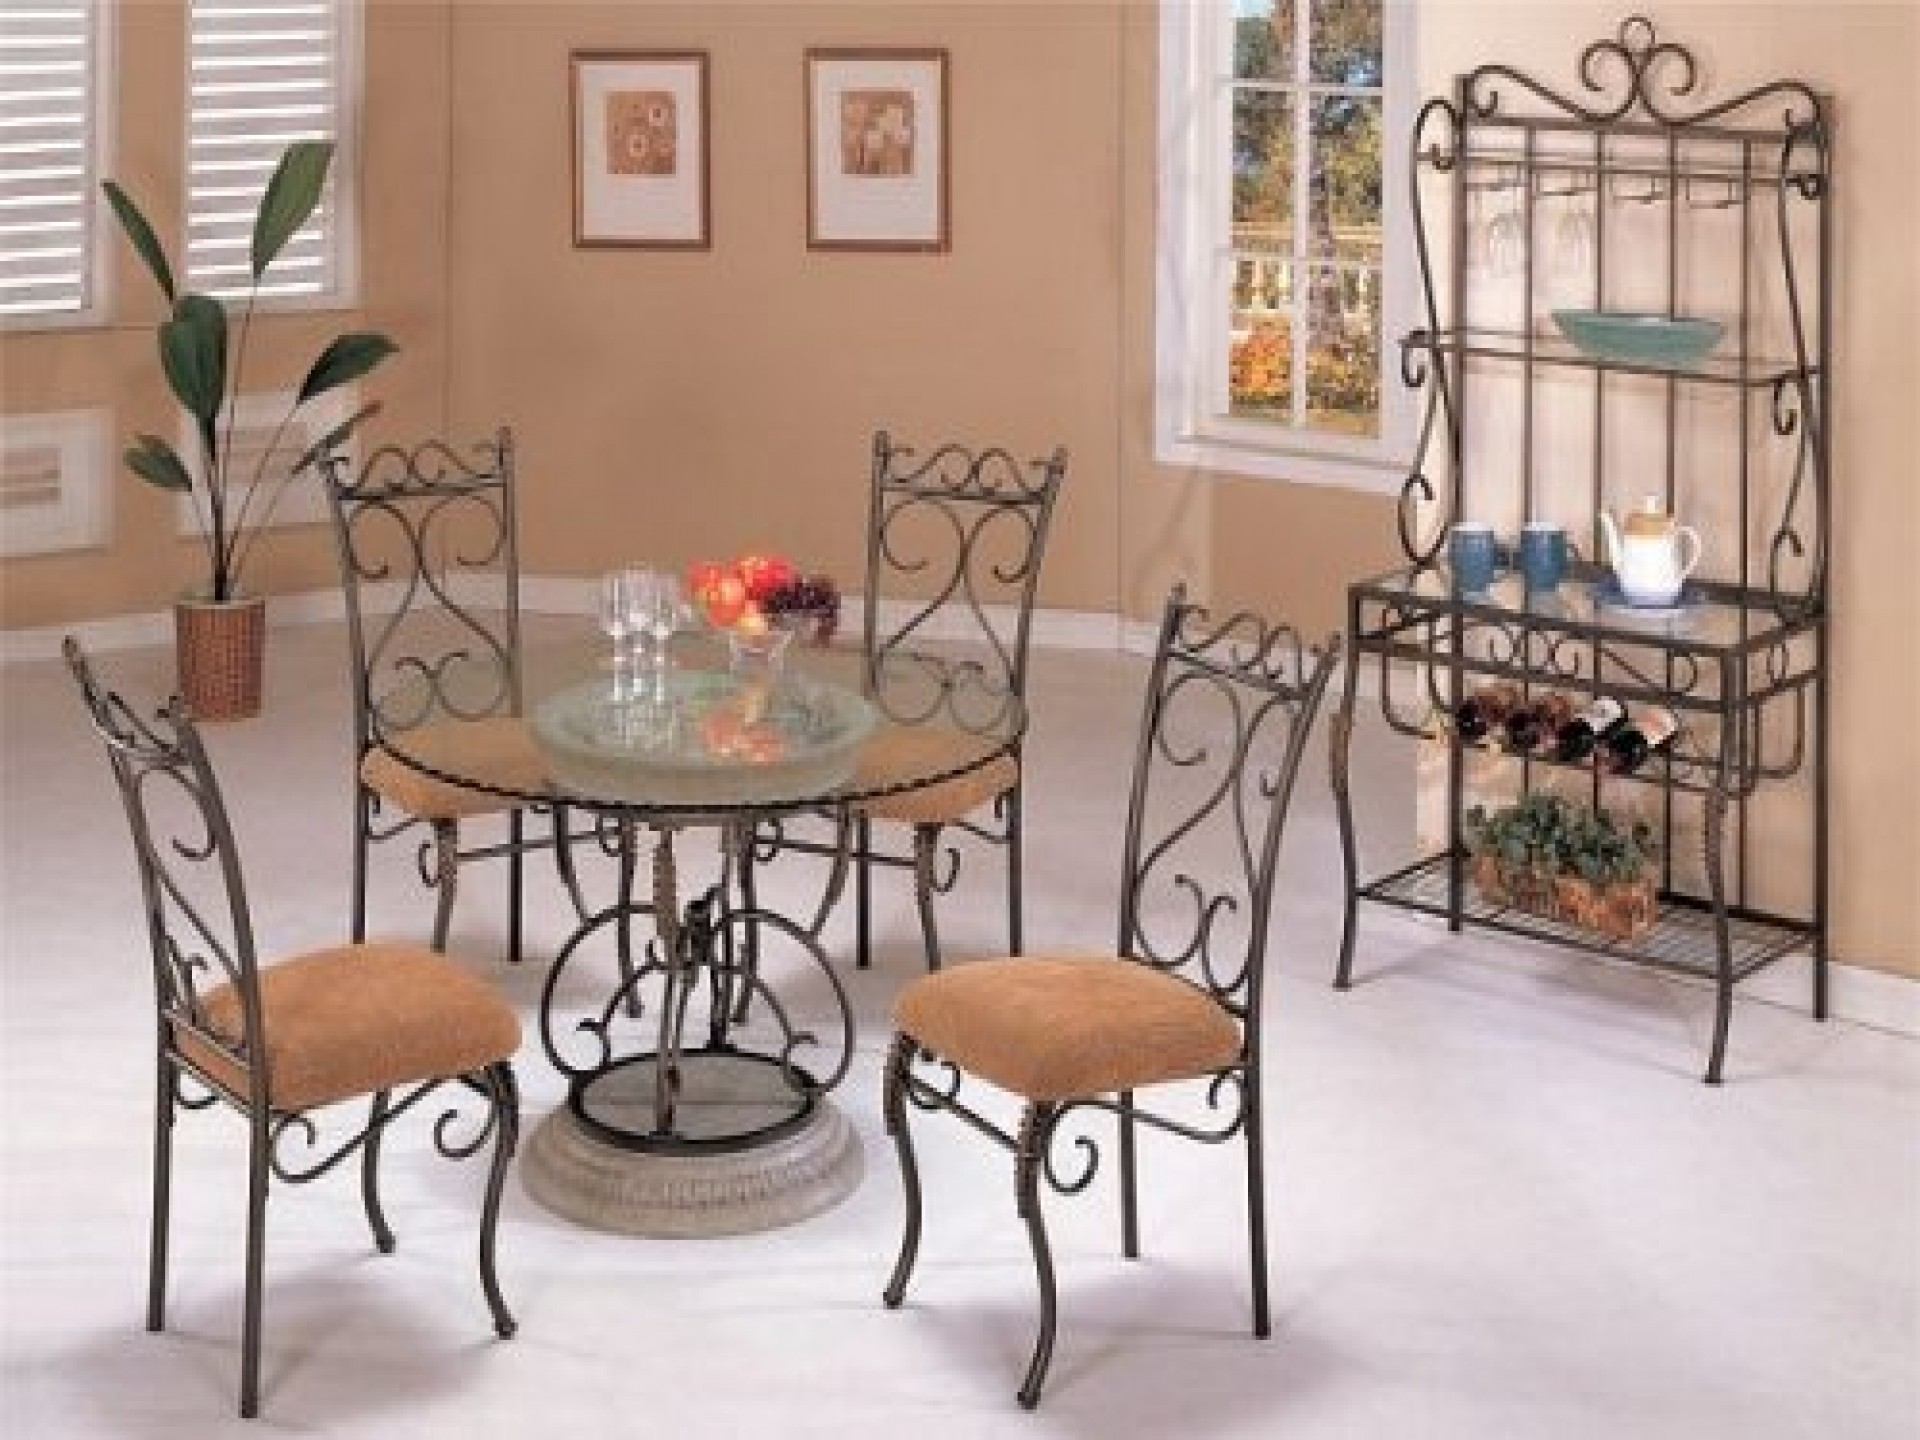 captivating rod iron furniture design of wrought dining